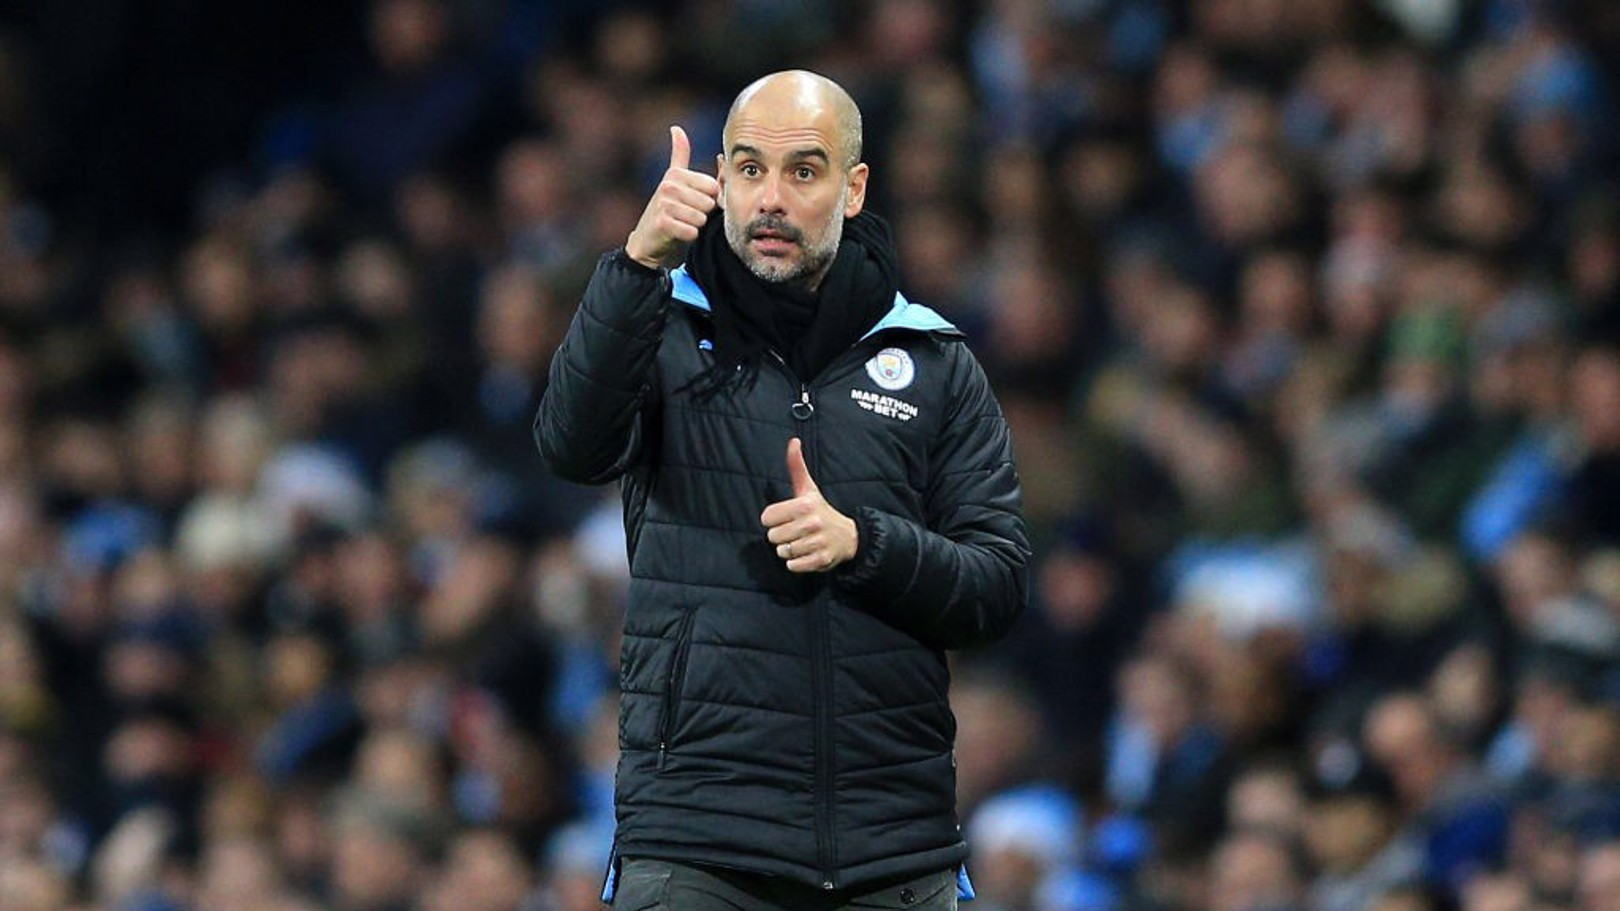 THUMBS UP: Pep Guardiola hailed the City fans after the 3-1 win over Leicester.